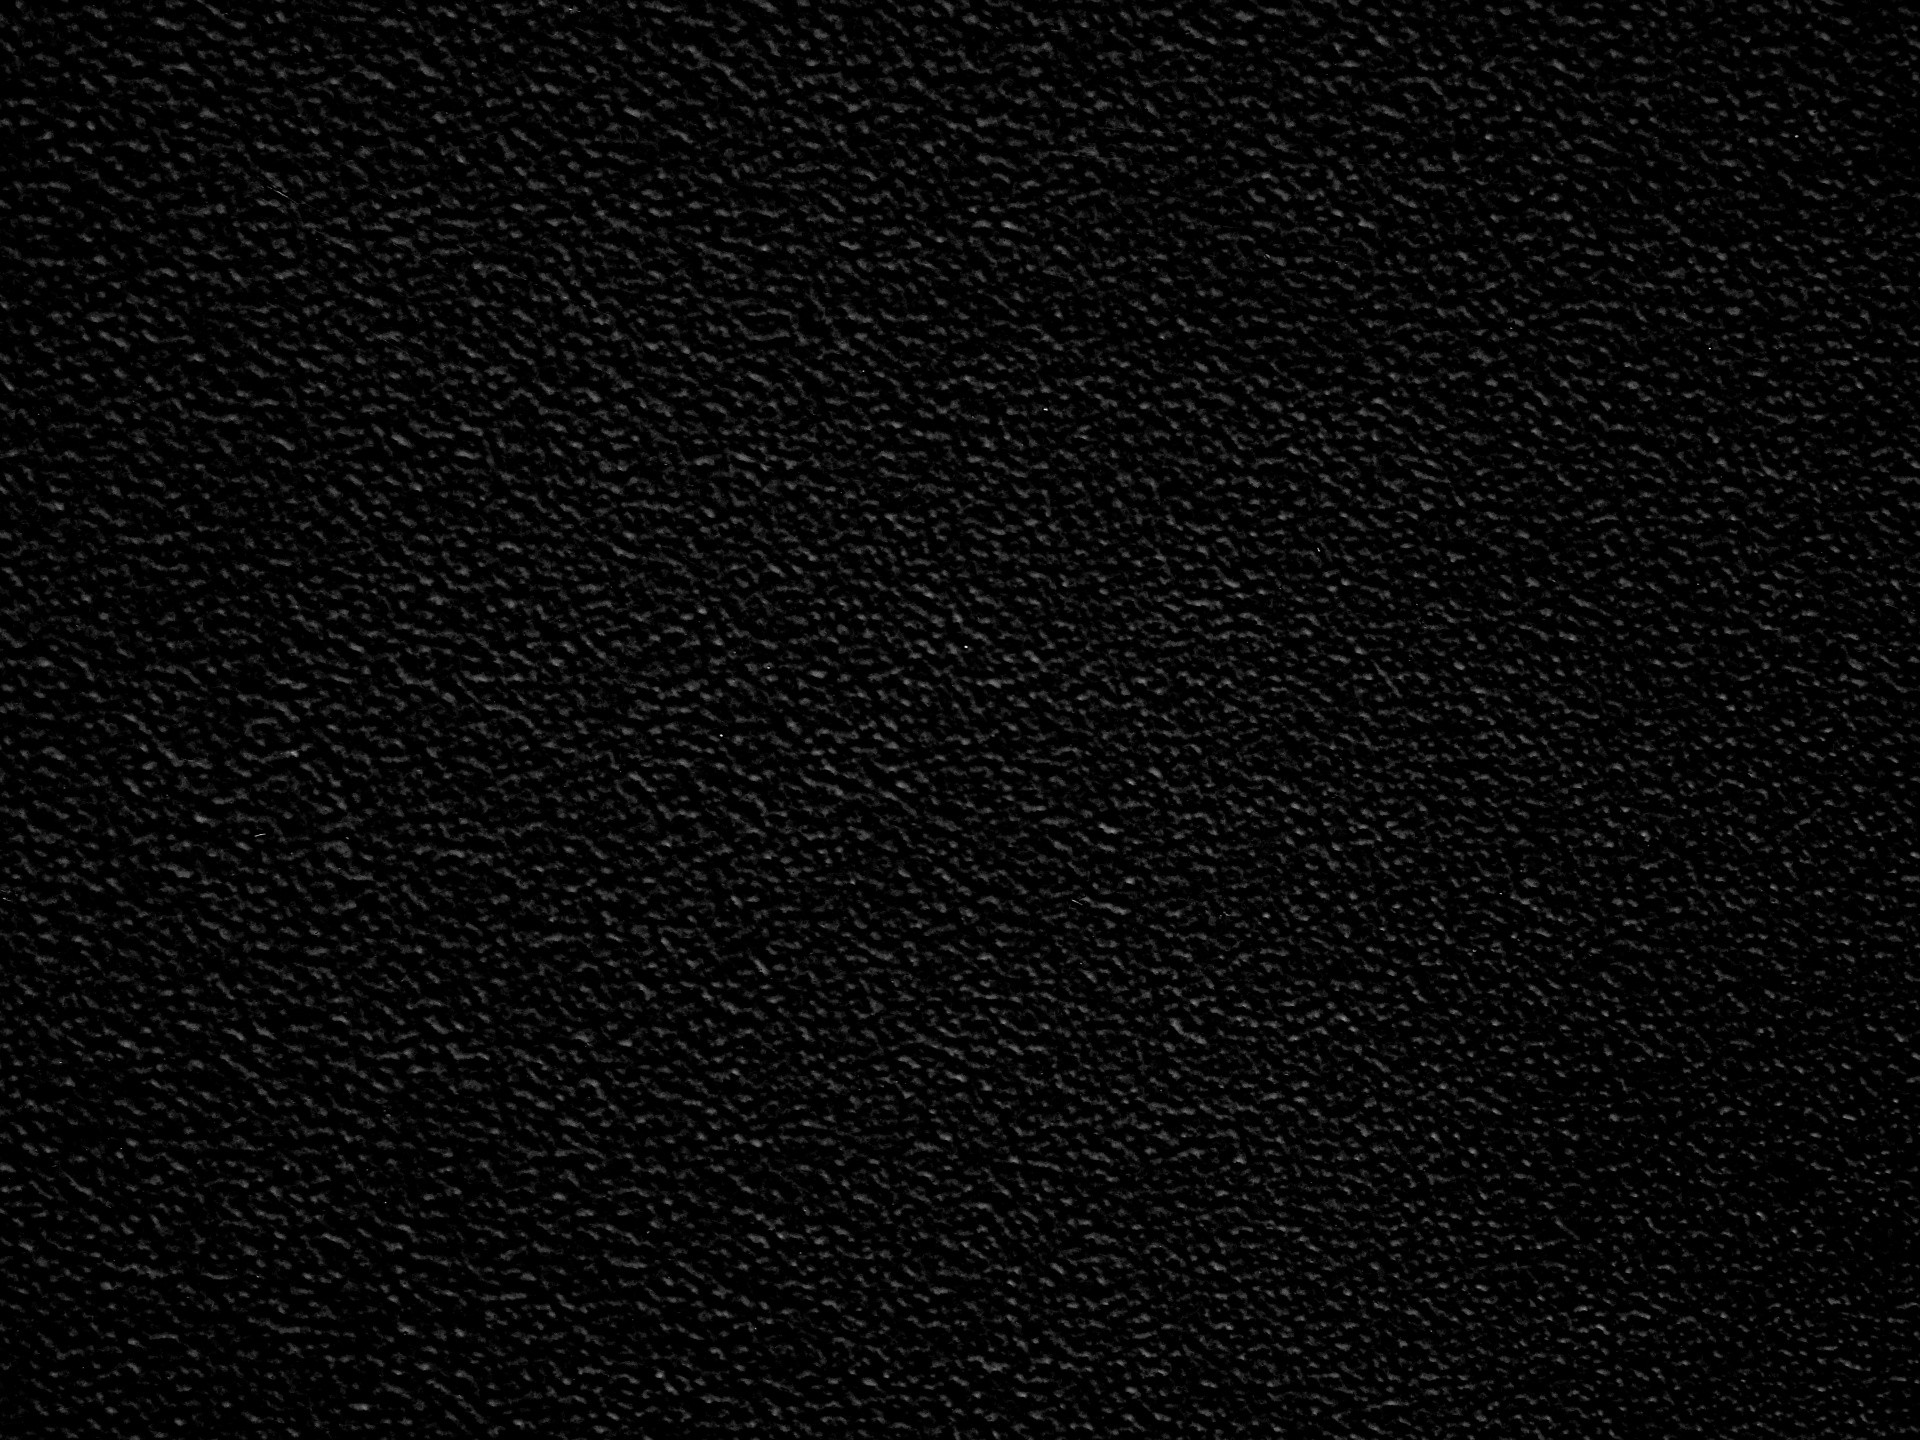 Black Pattern Background 183 ① Download Free Beautiful